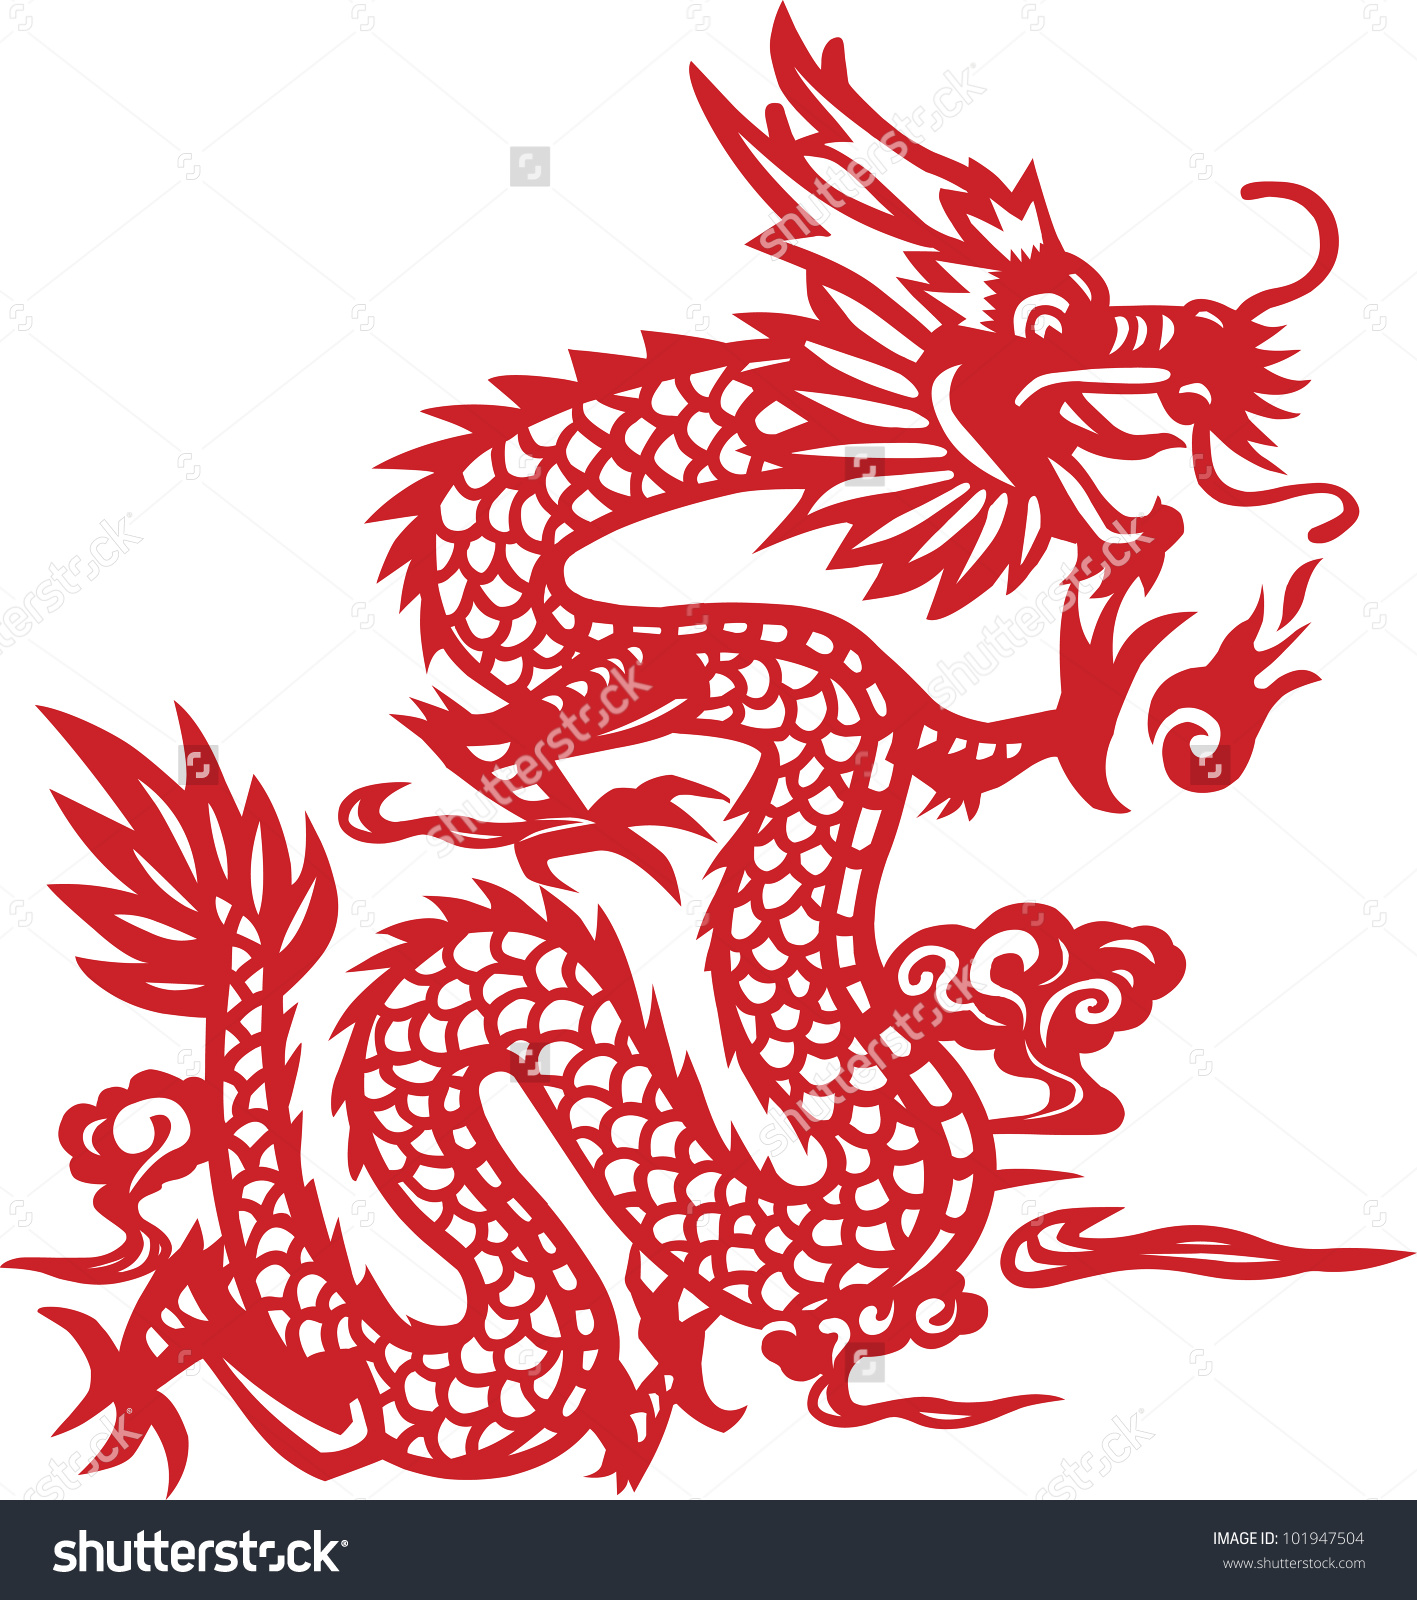 Clipart images of chinese dragons.